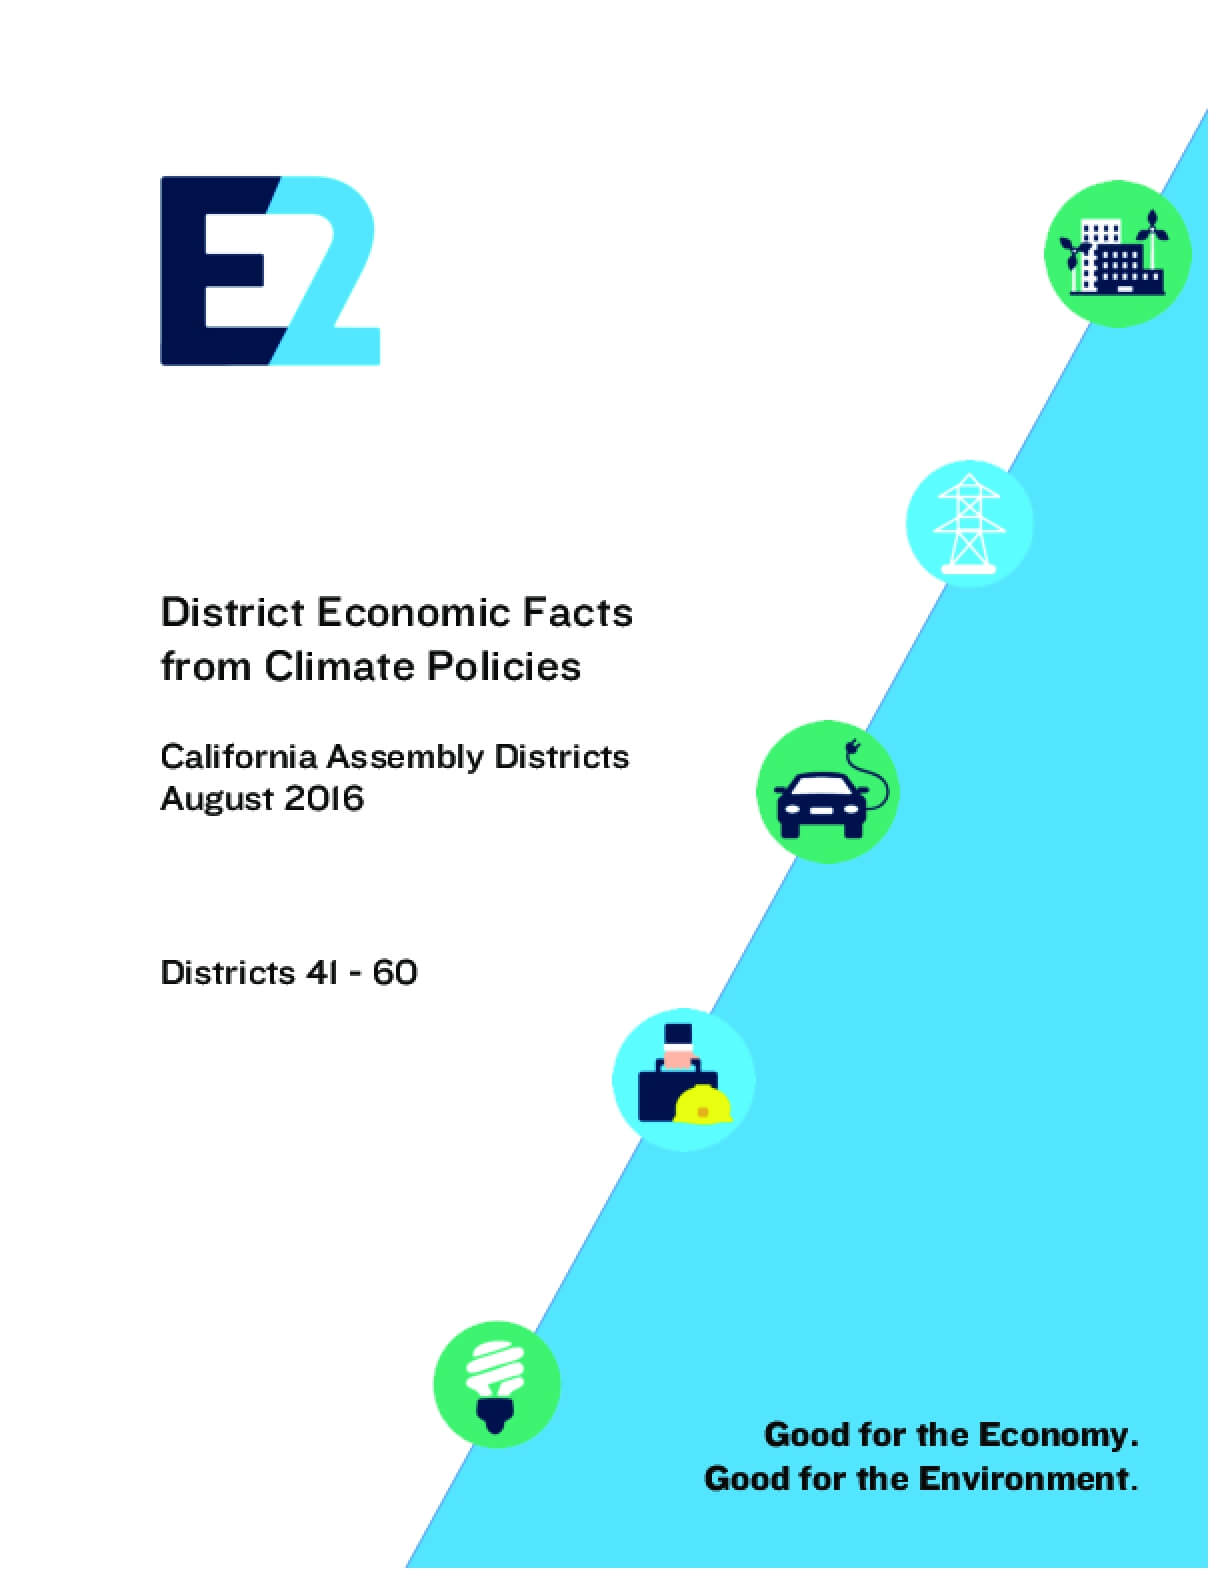 District Economic Facts from Climate Policies: California Assembly Districts 41 - 60